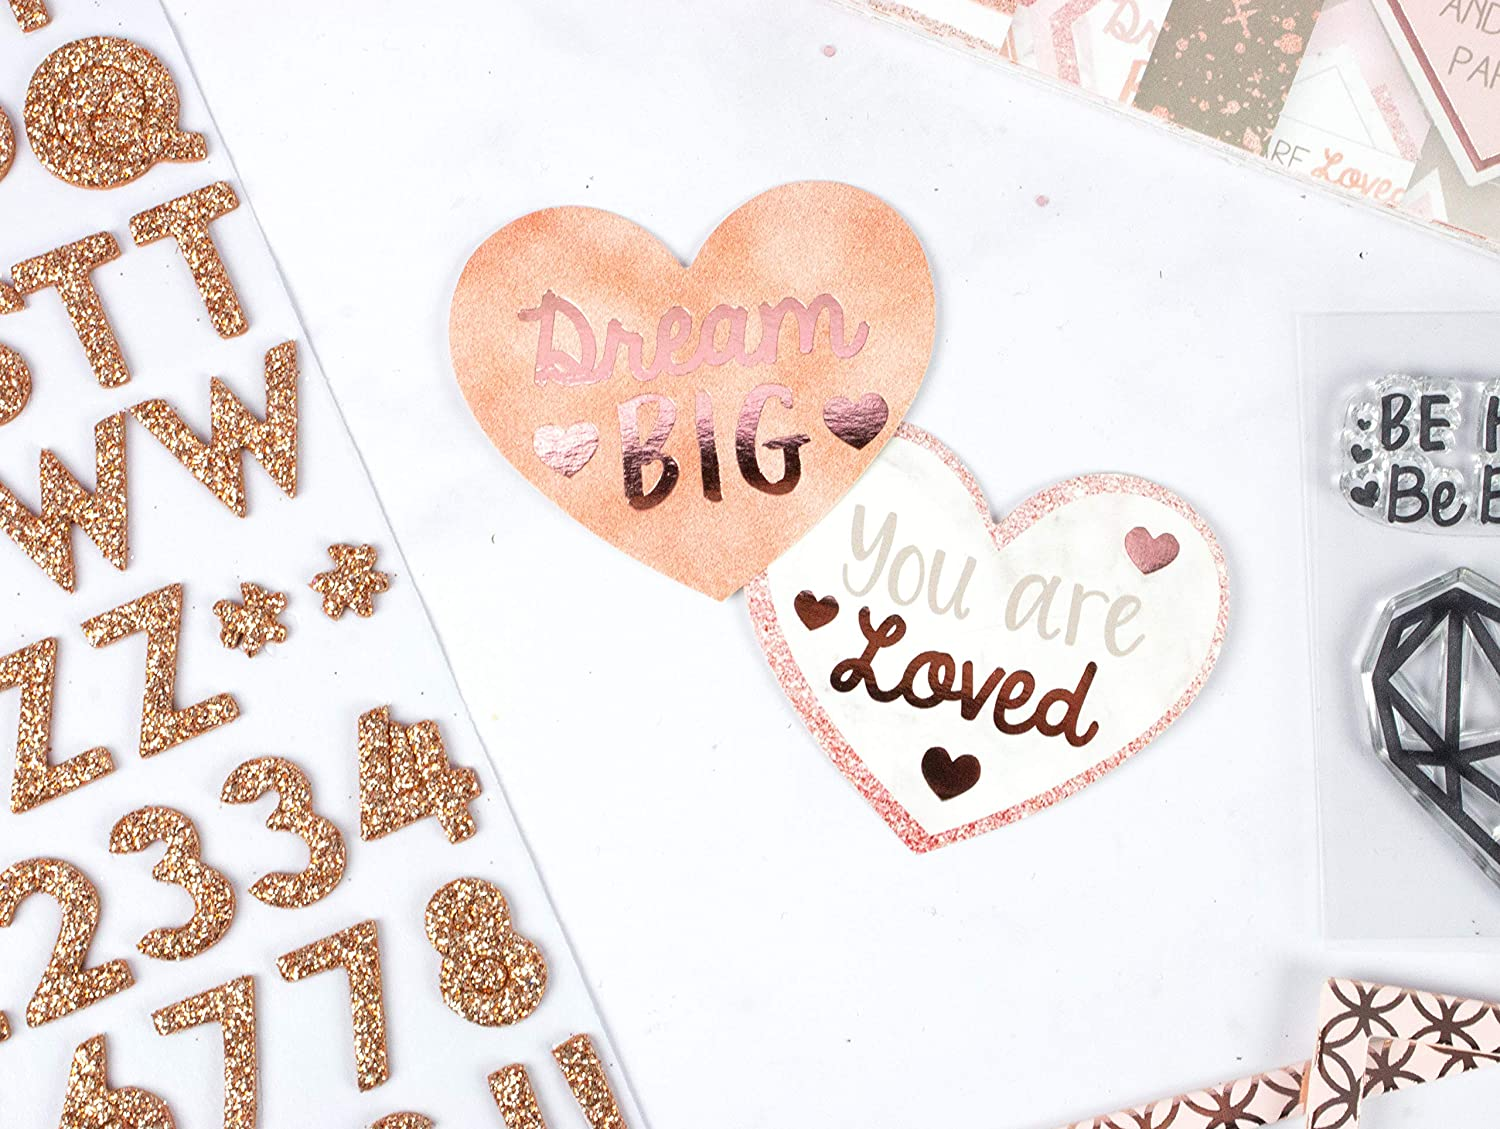 Rose Gold Dovecraft Premium Happy You FSC 12x12 Paper Pad 12x12 Pad-36 Stationery 12x12 3 Sheets of 12 Designs-with Glitter and Foil Effects Certified-for Crafts Journaling